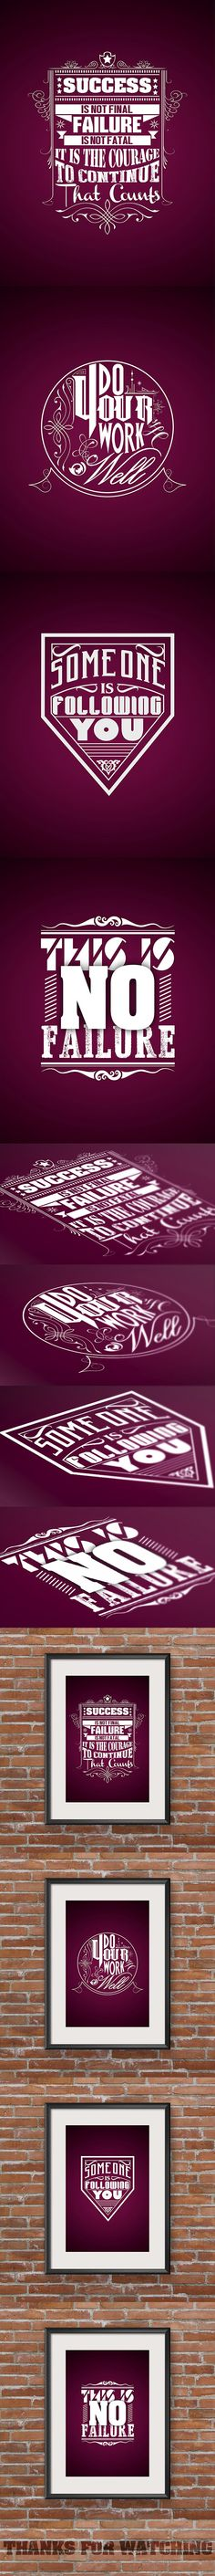 Typography Famous Quotes-Vol 2 on Behance